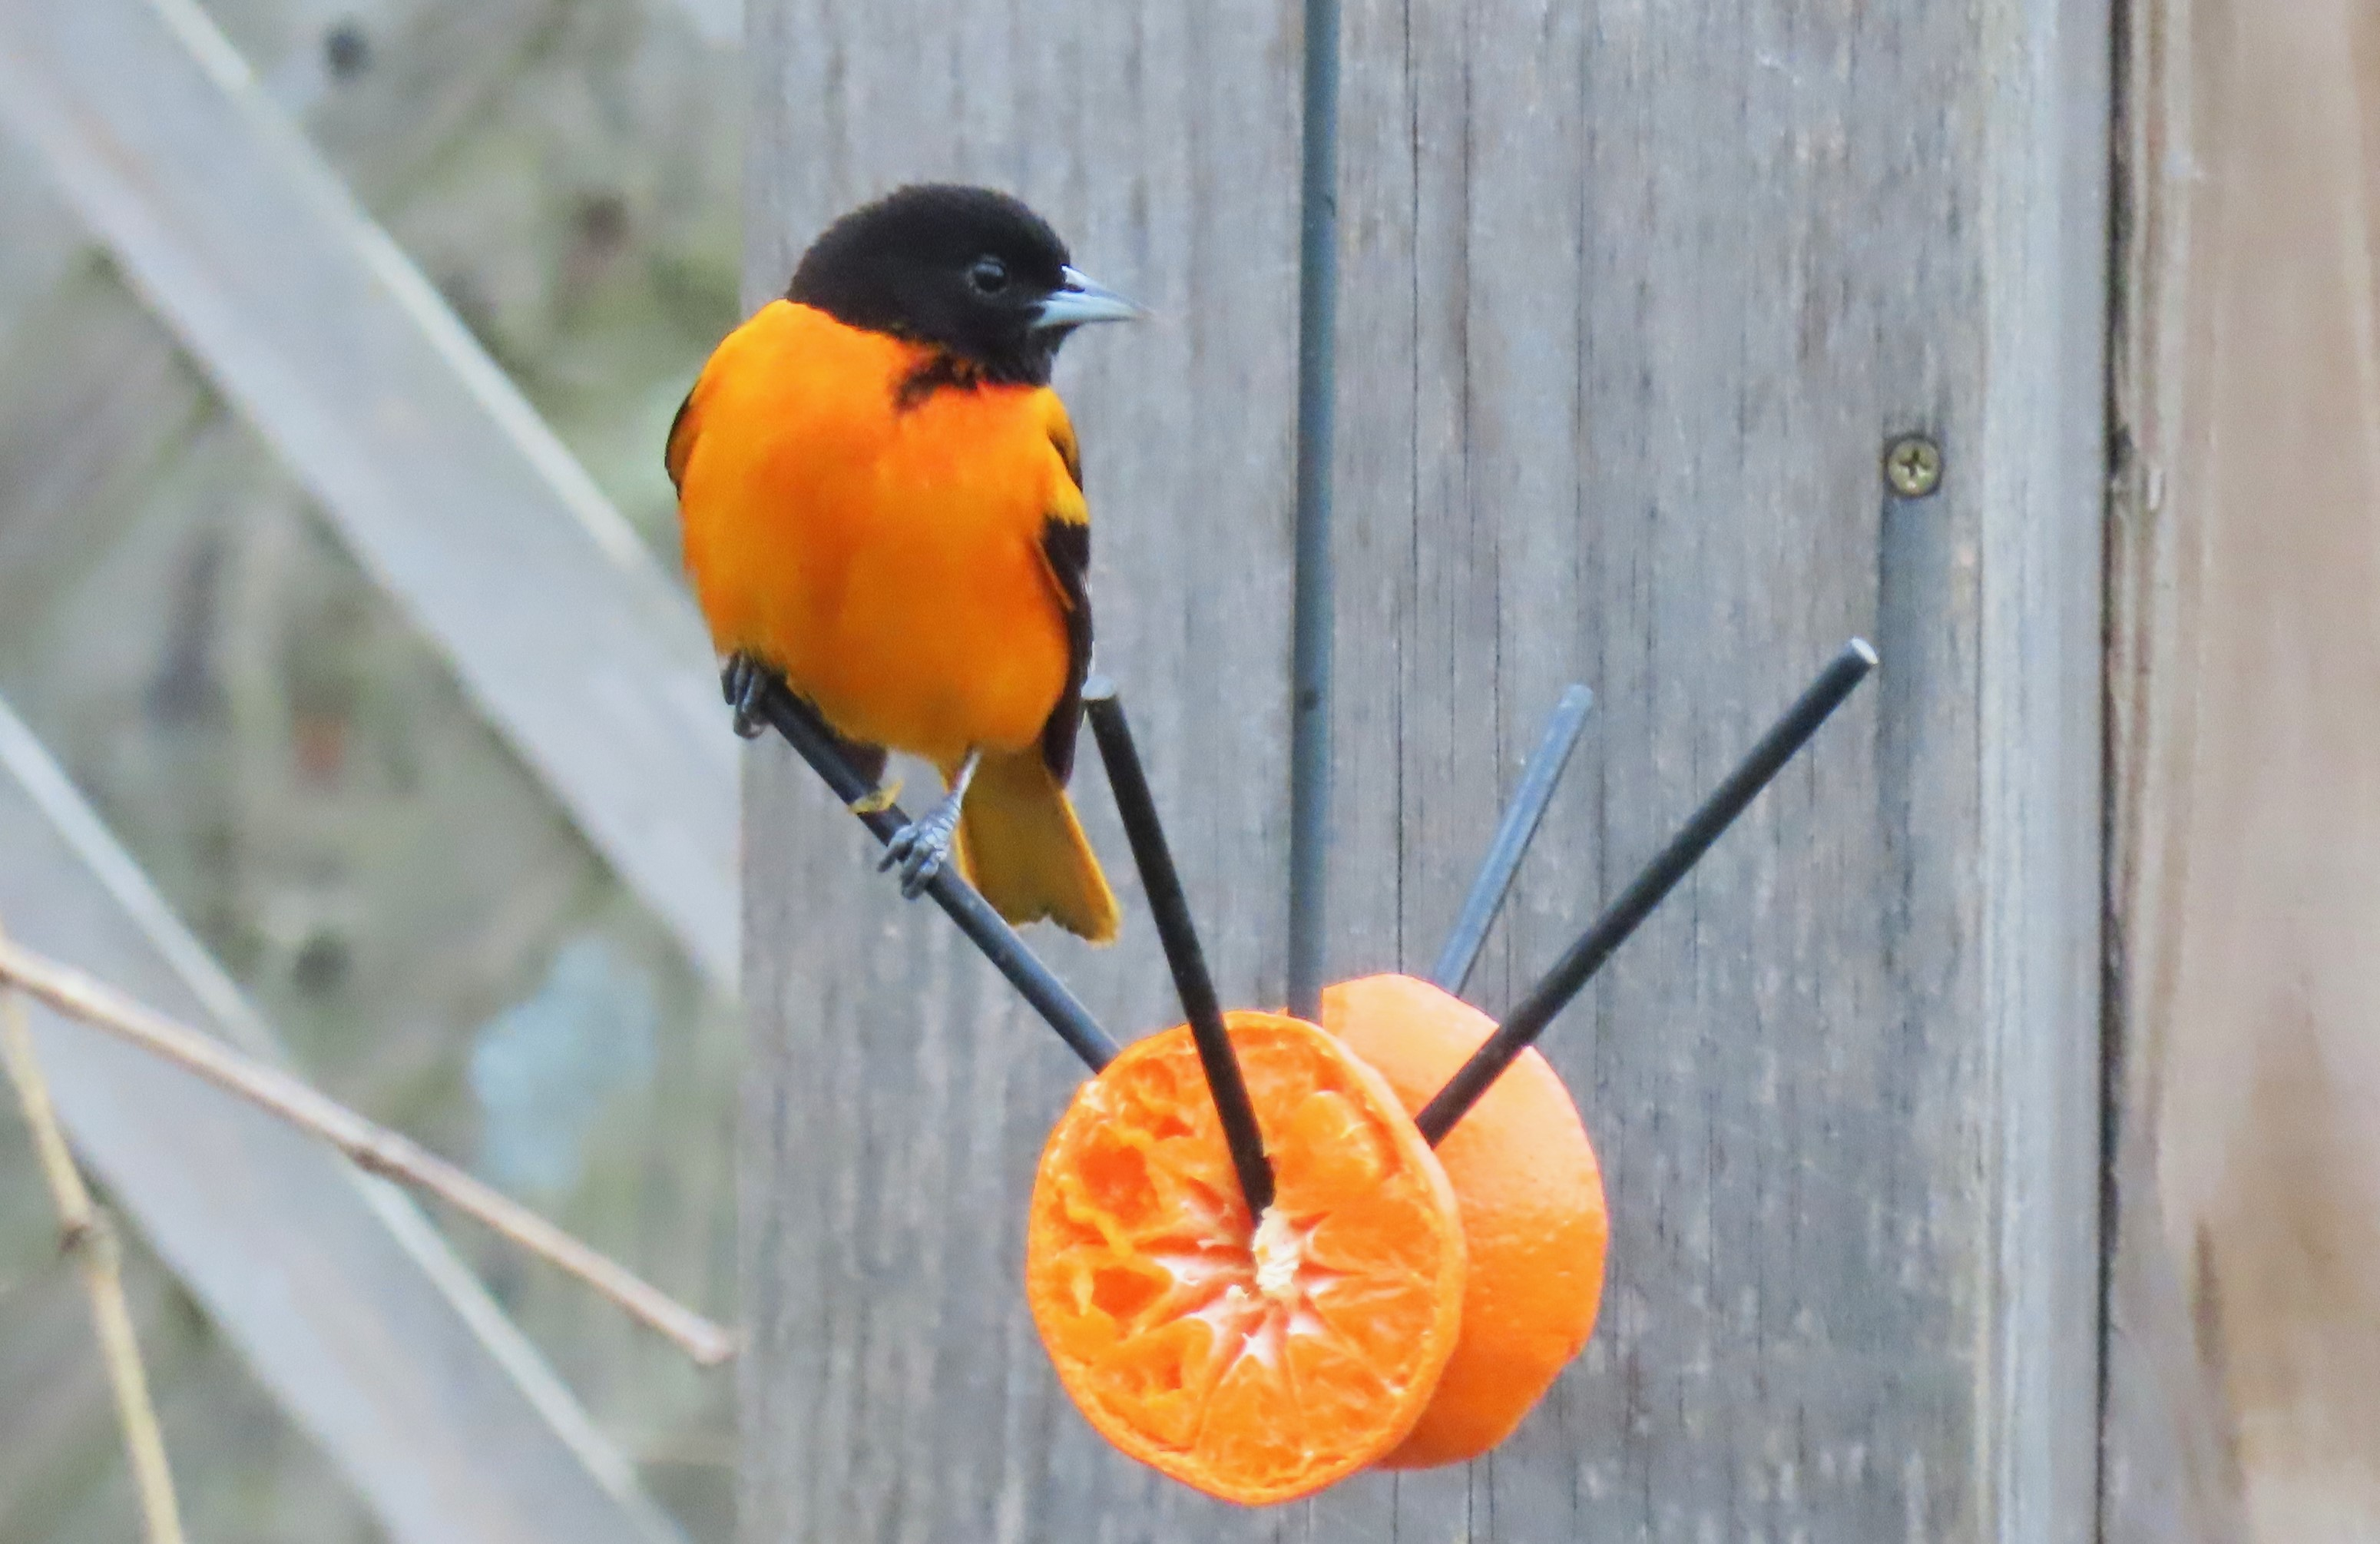 A male Baltimore Oriole perched on a feeder with sliced oranges